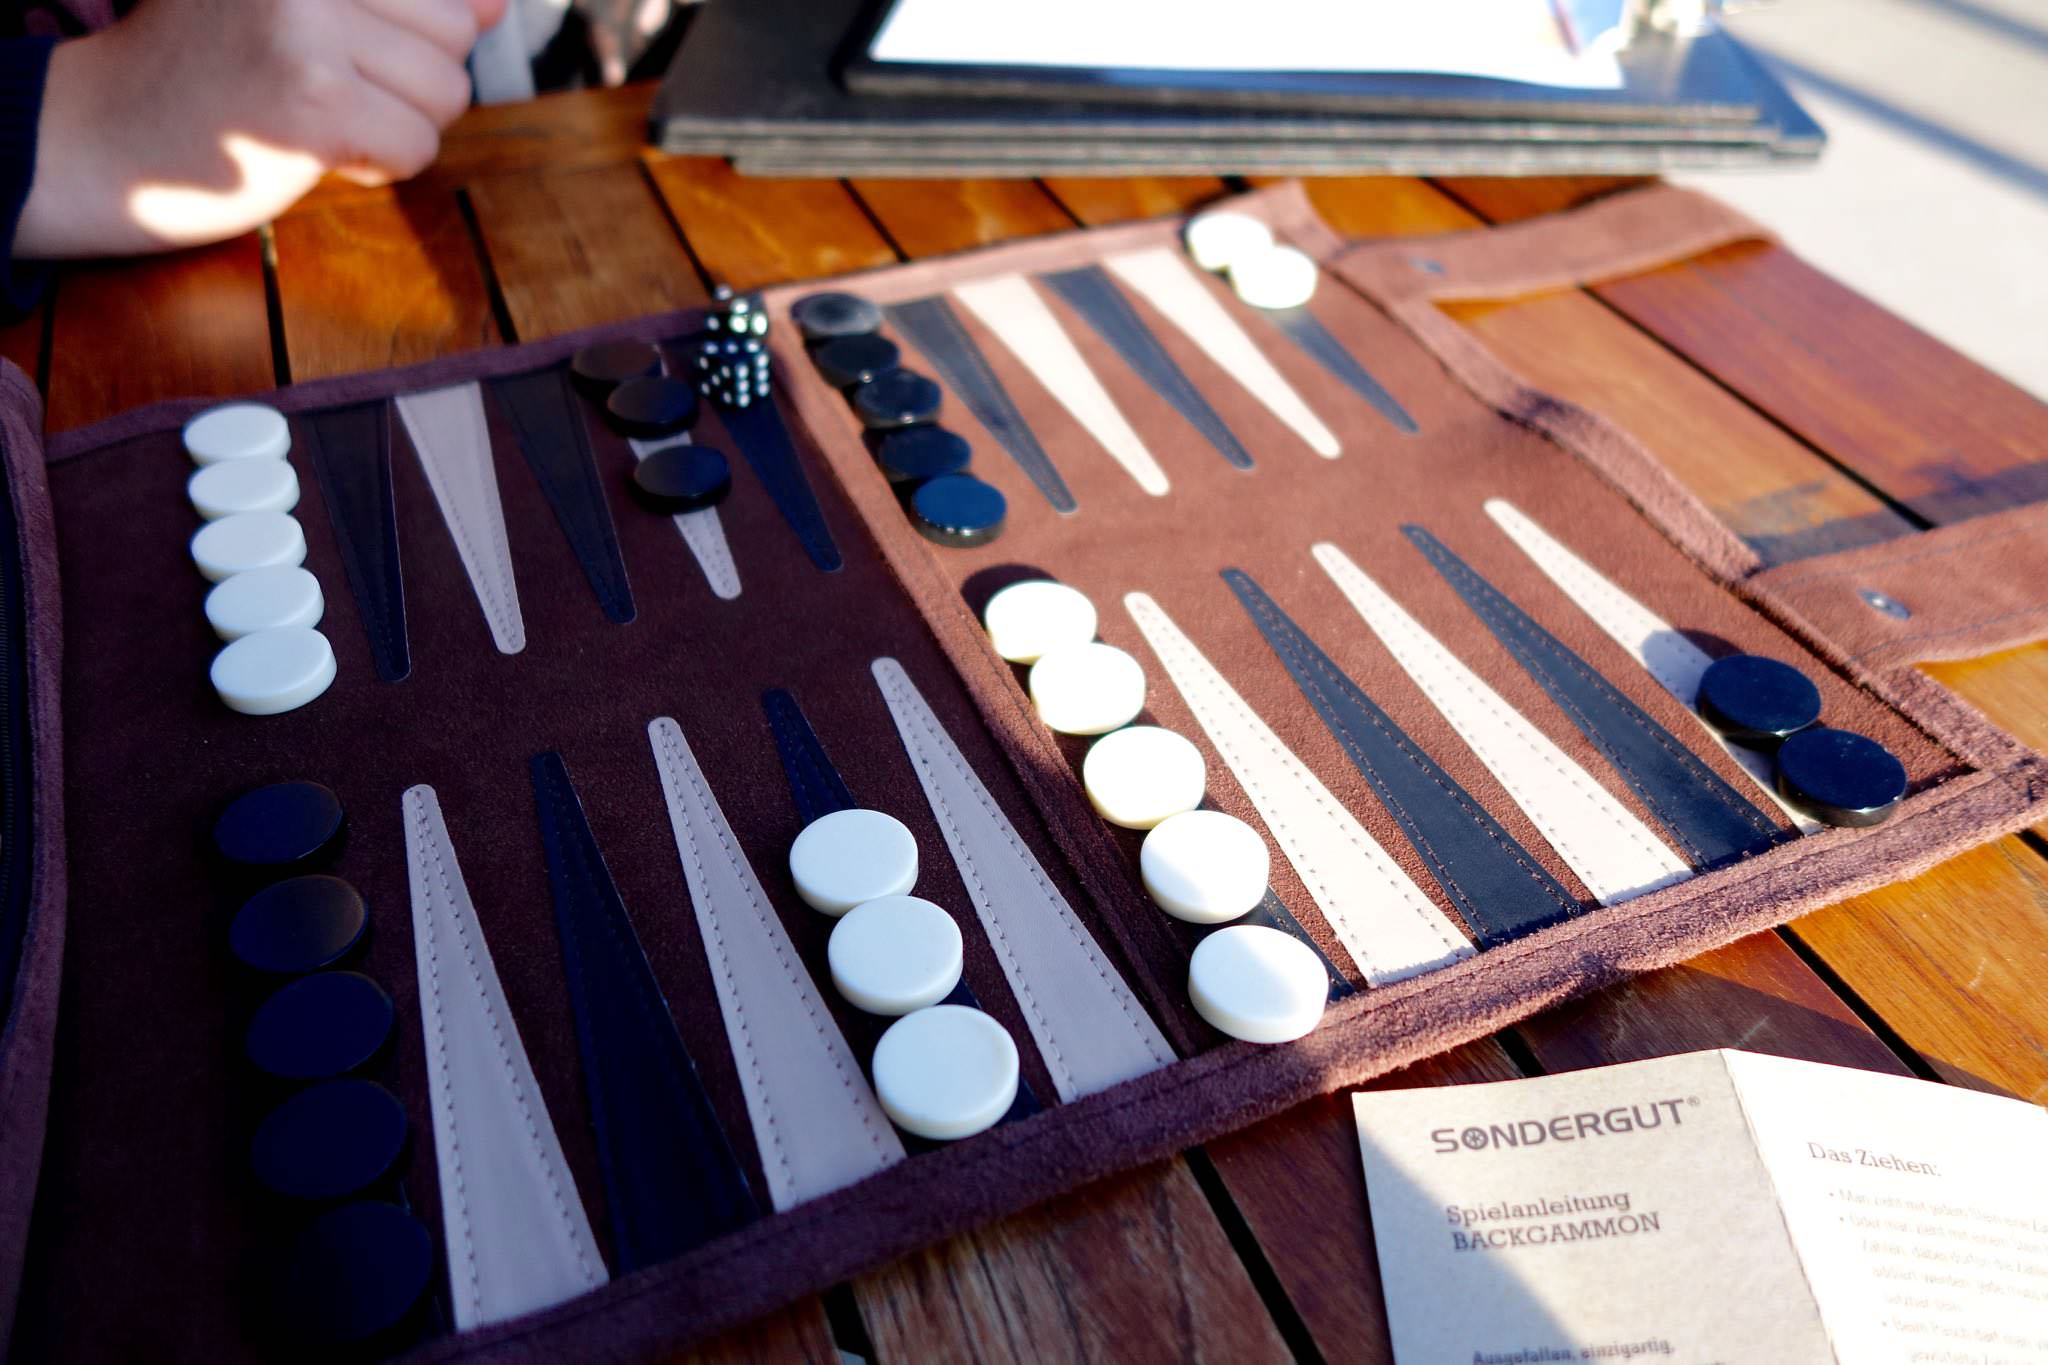 Sondergut Backgammon - 10